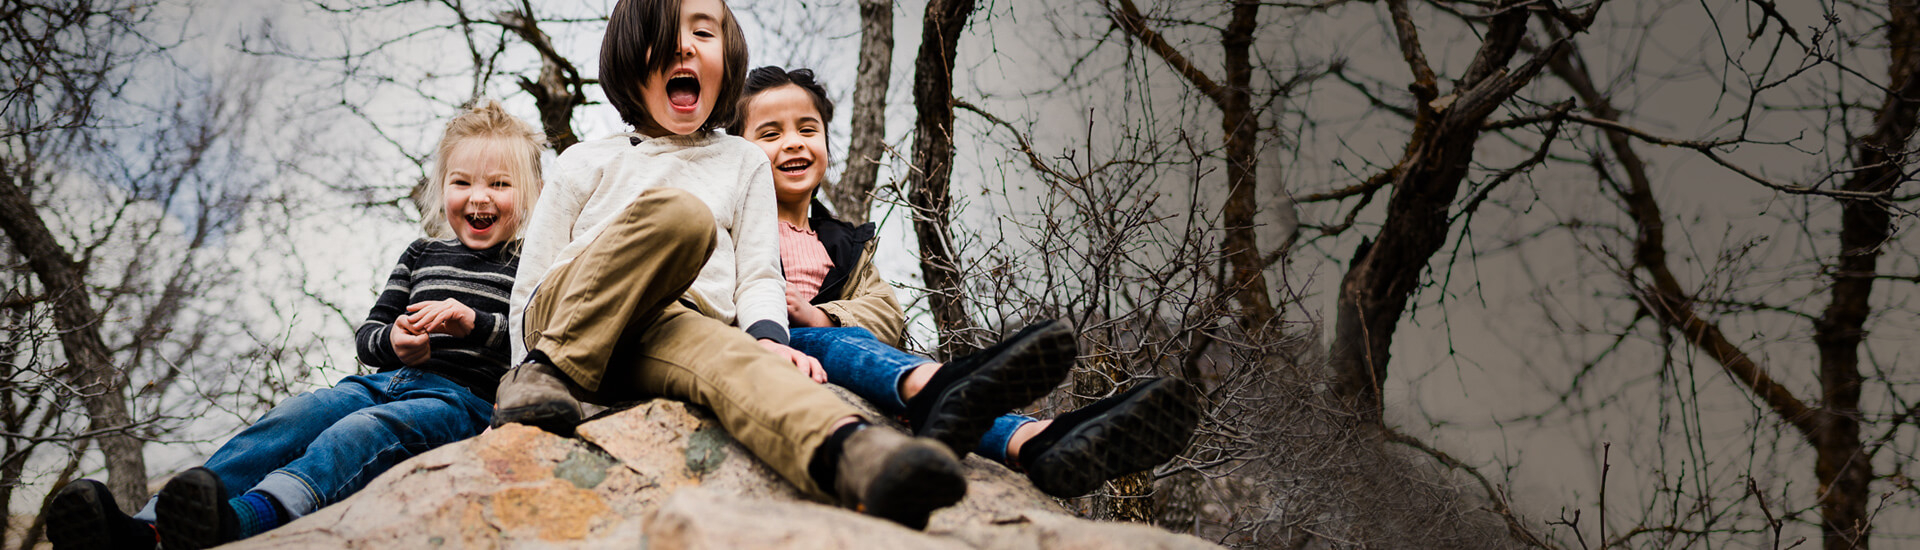 Three happy kids sat atop a large boulder among trees.